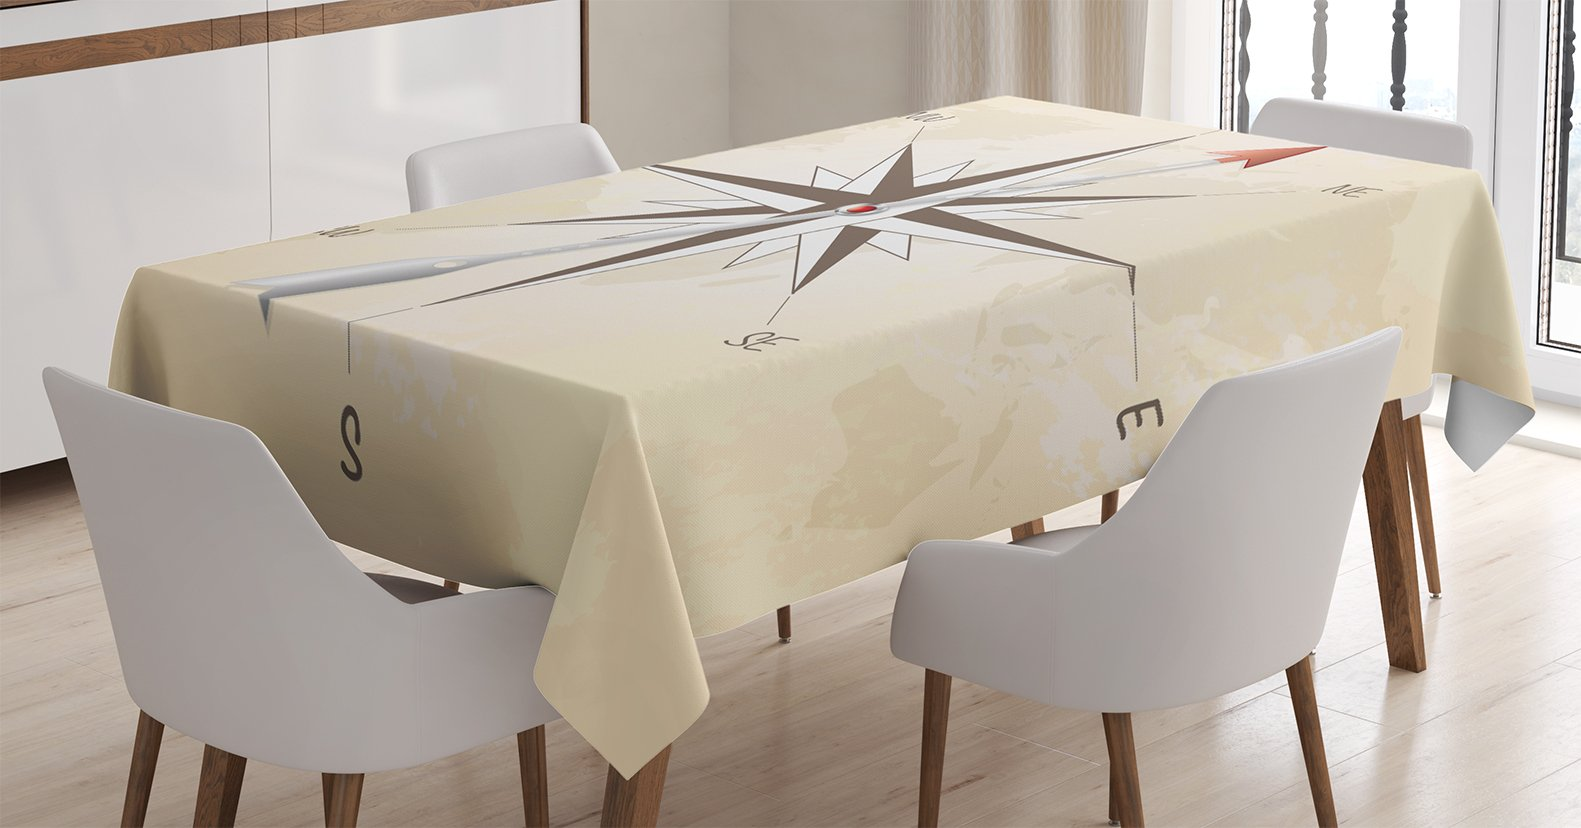 Amazon Com Ambesonne Compass Tablecloth Compass Rose With Arrow On Vintage Grungy Background Travel Navigation Artwork Rectangular Table Cover For Dining Room Kitchen Decor 60 X 84 Taupe Cream Home Kitchen